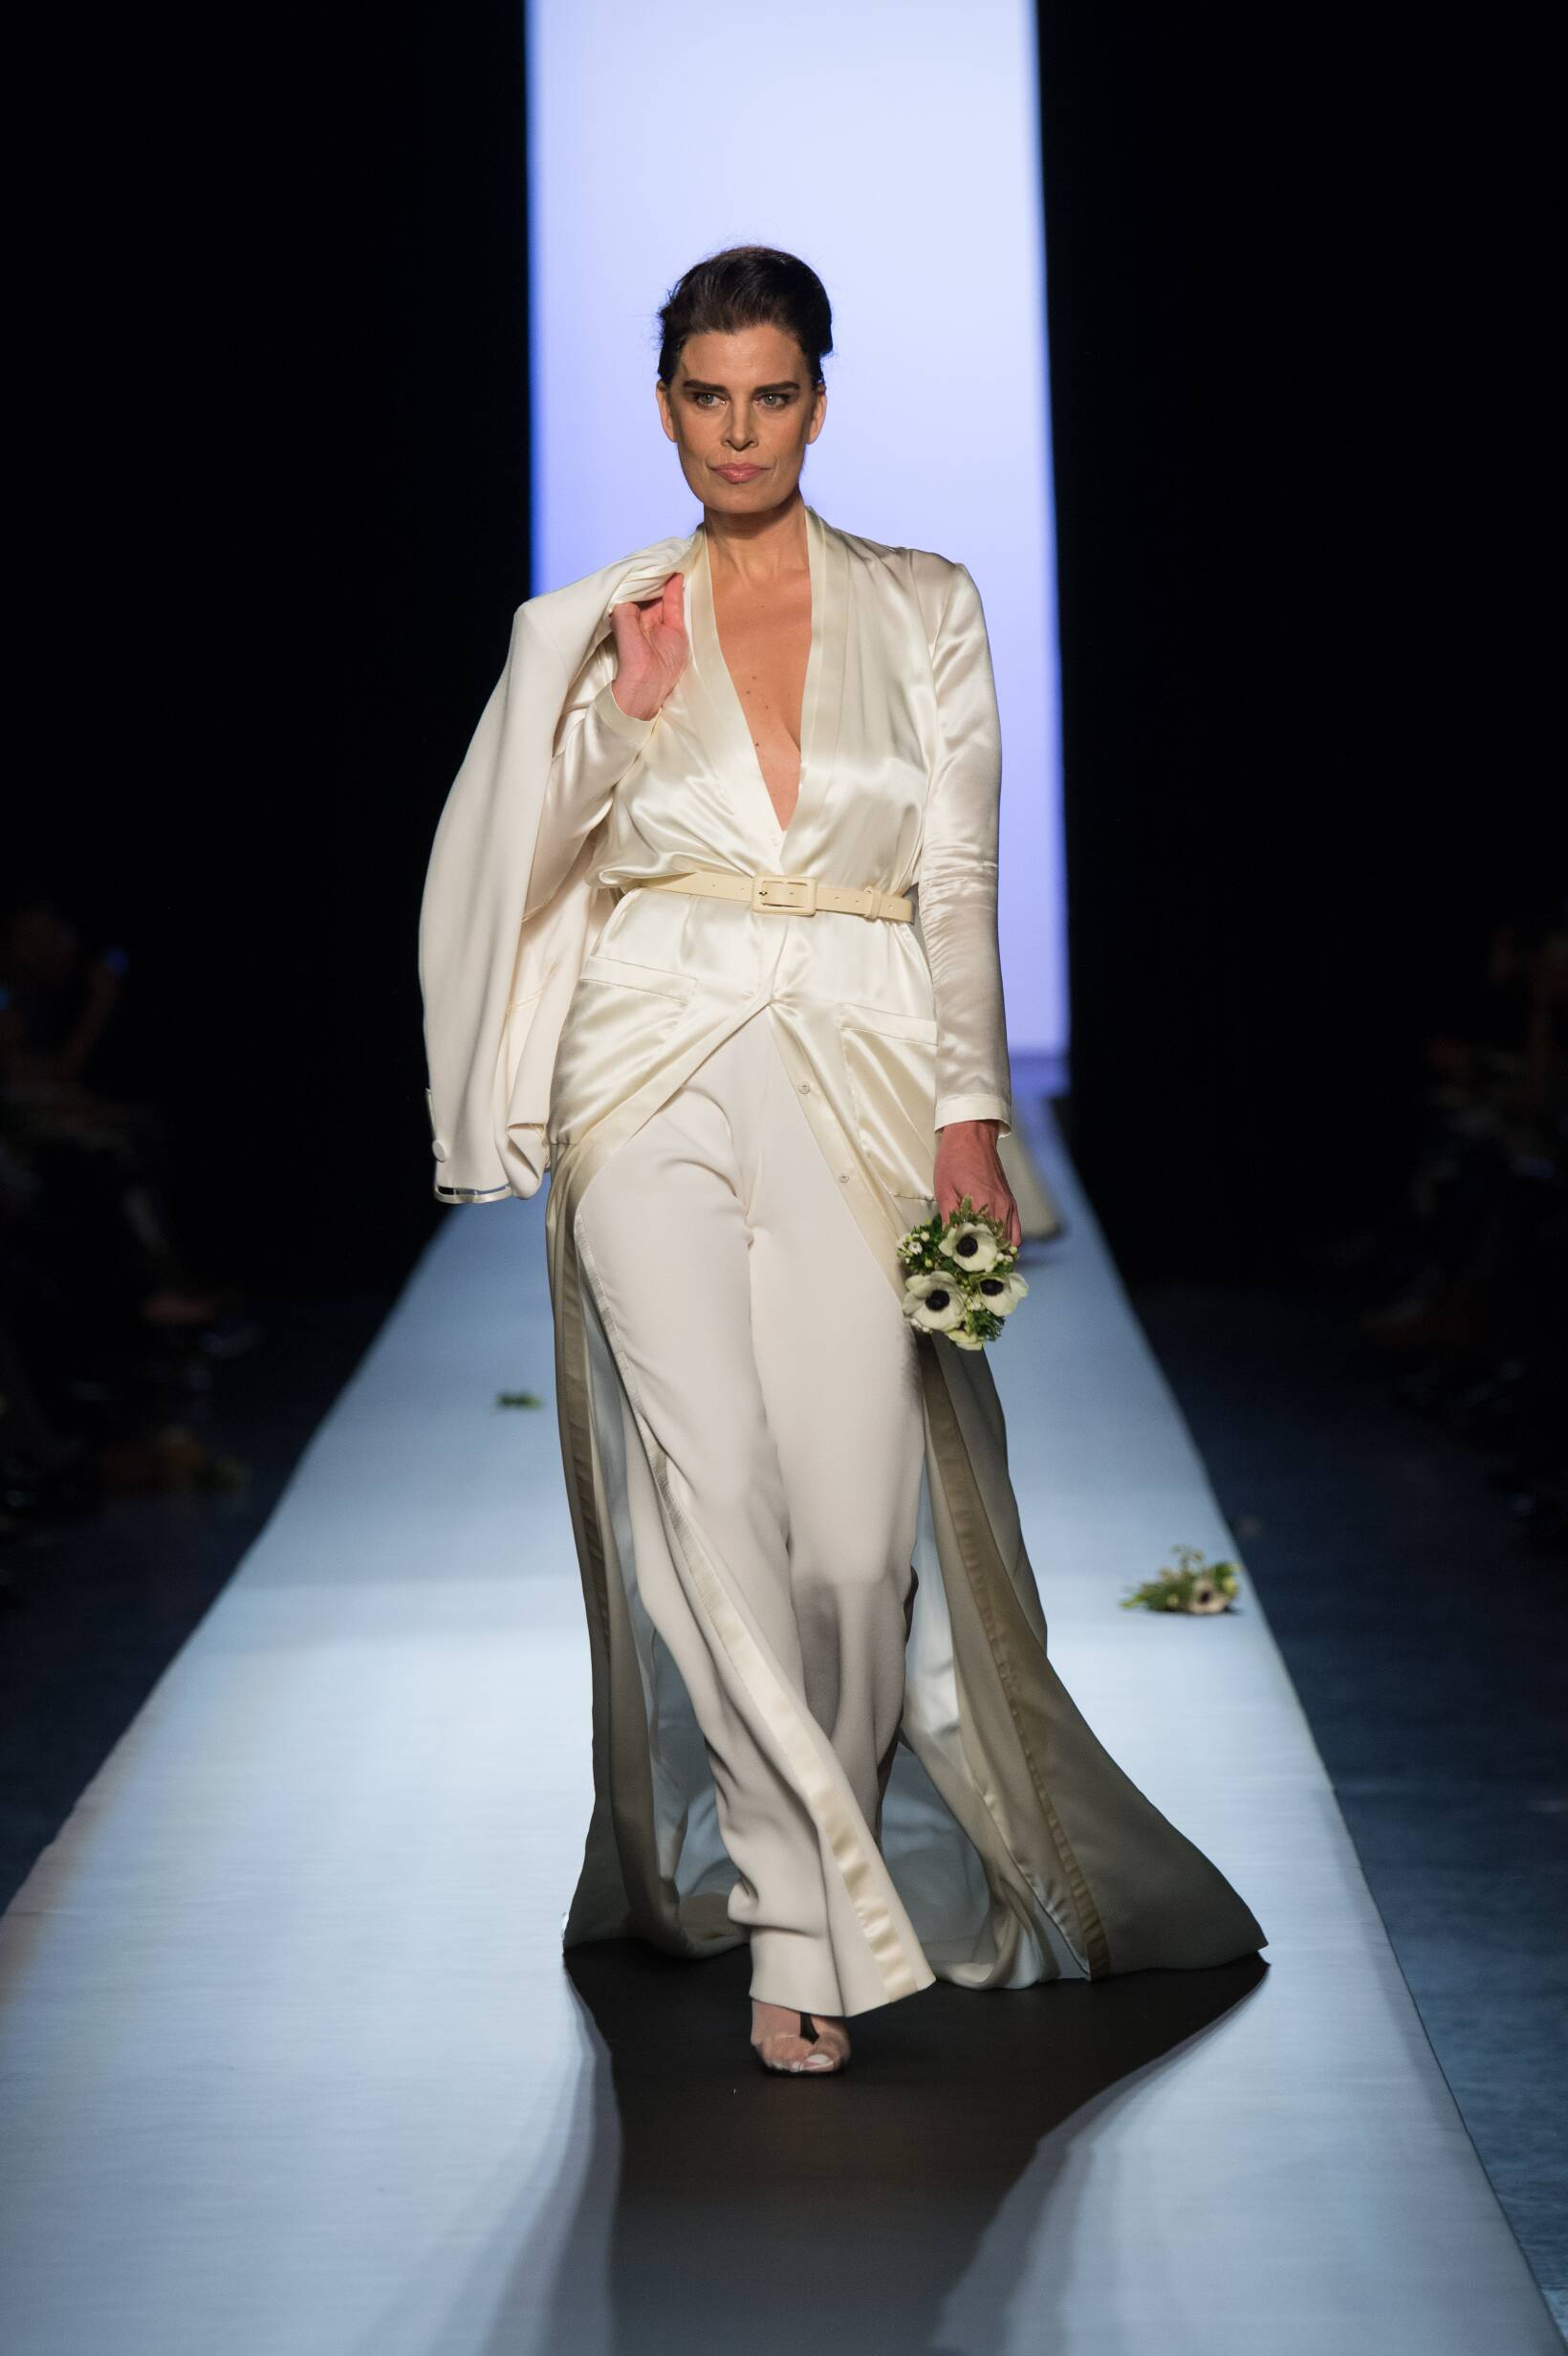 Catwalk Jean Paul Gaultier Haute Couture Spring Summer 2015 Women's Collection Paris Fashion Week